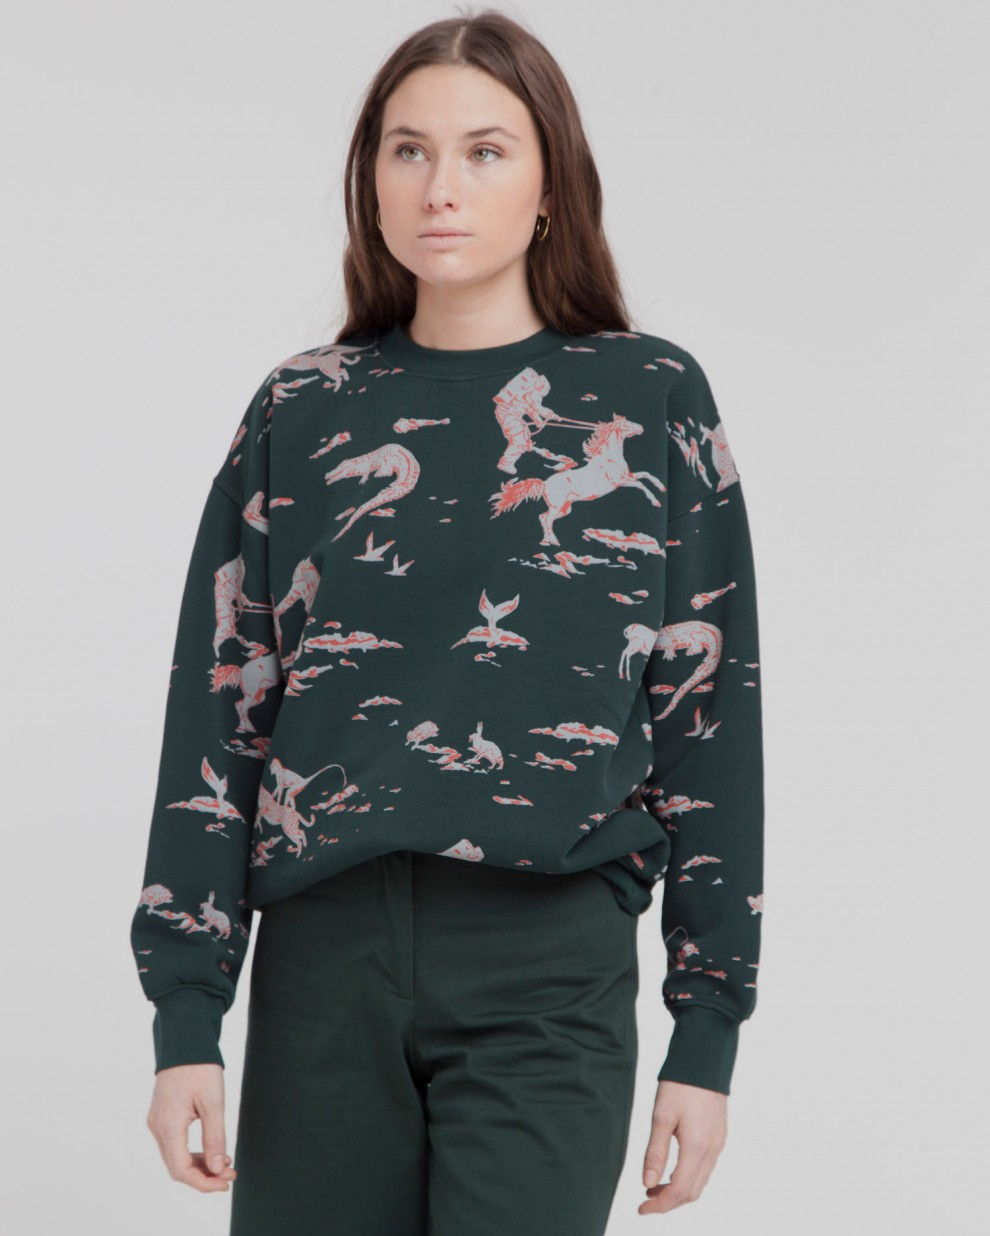 Space Rider Sweatshirt